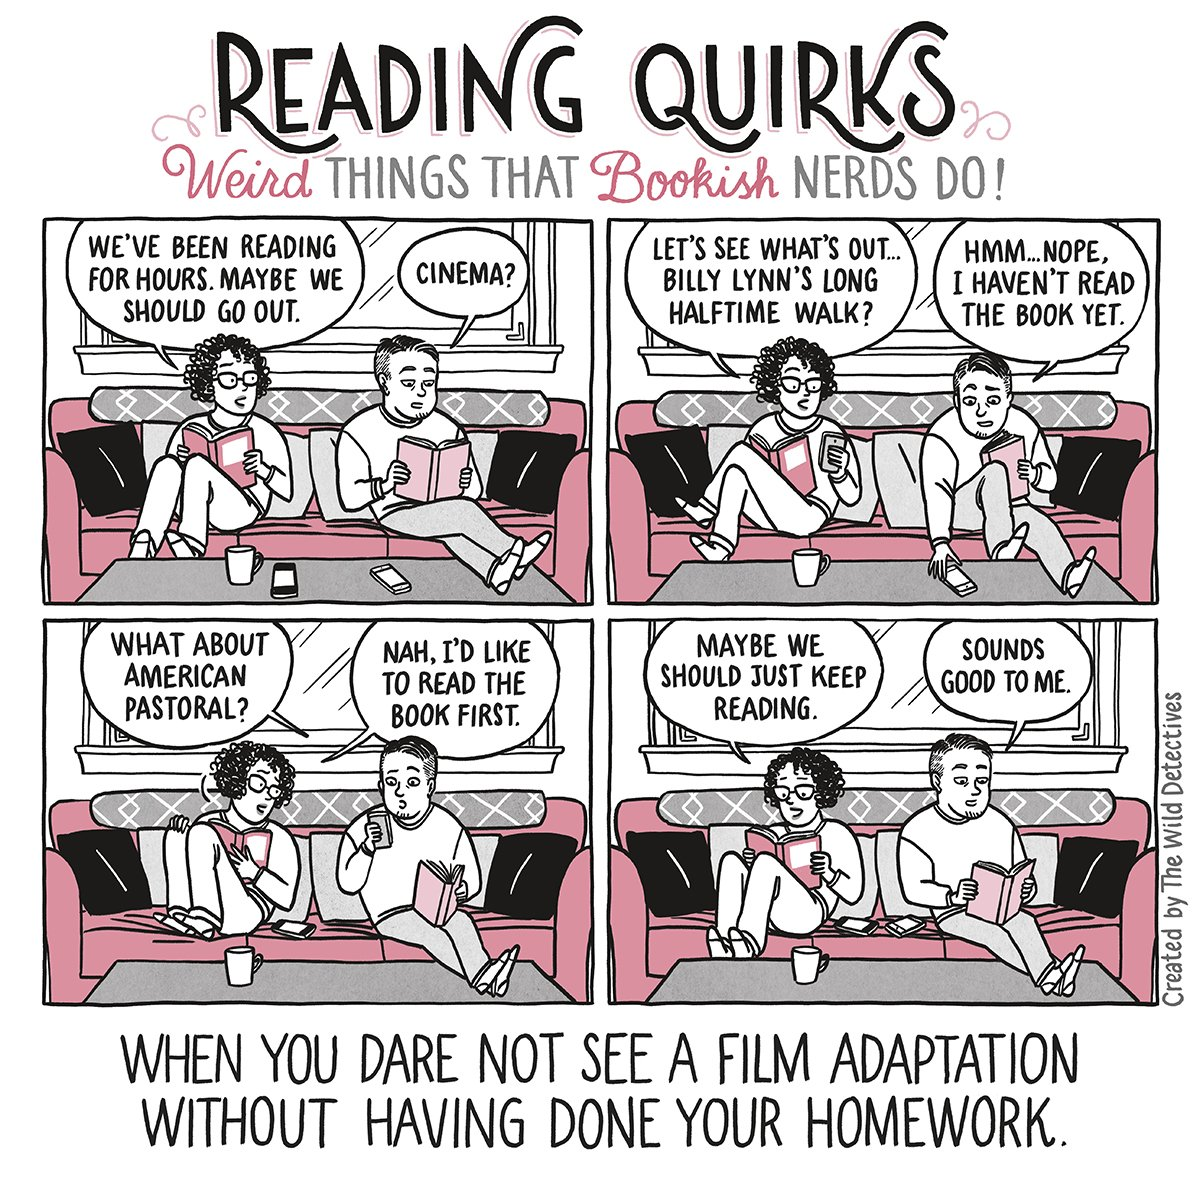 Reading Quirks #13